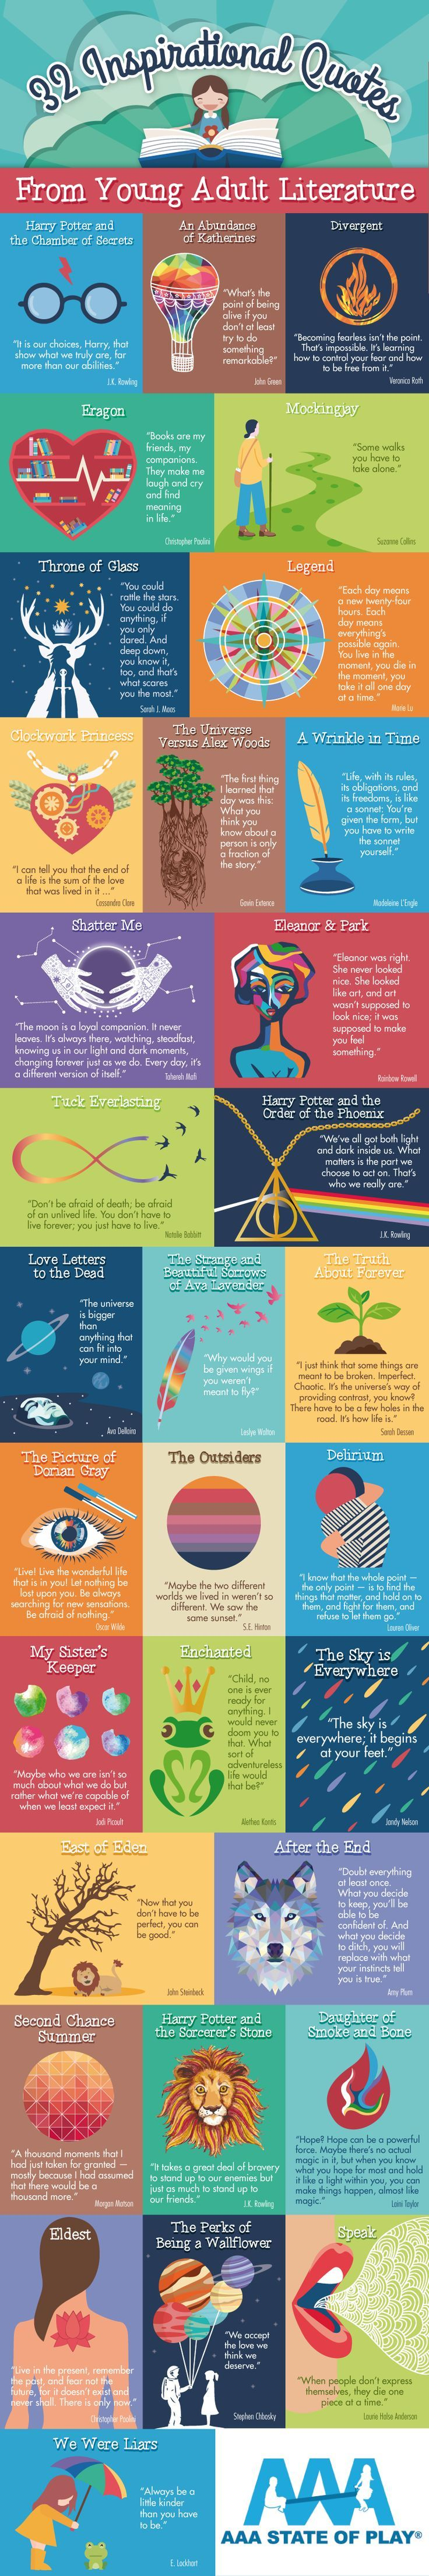 32 Inspirational Quotes from Young Adult Literature [Infographic]